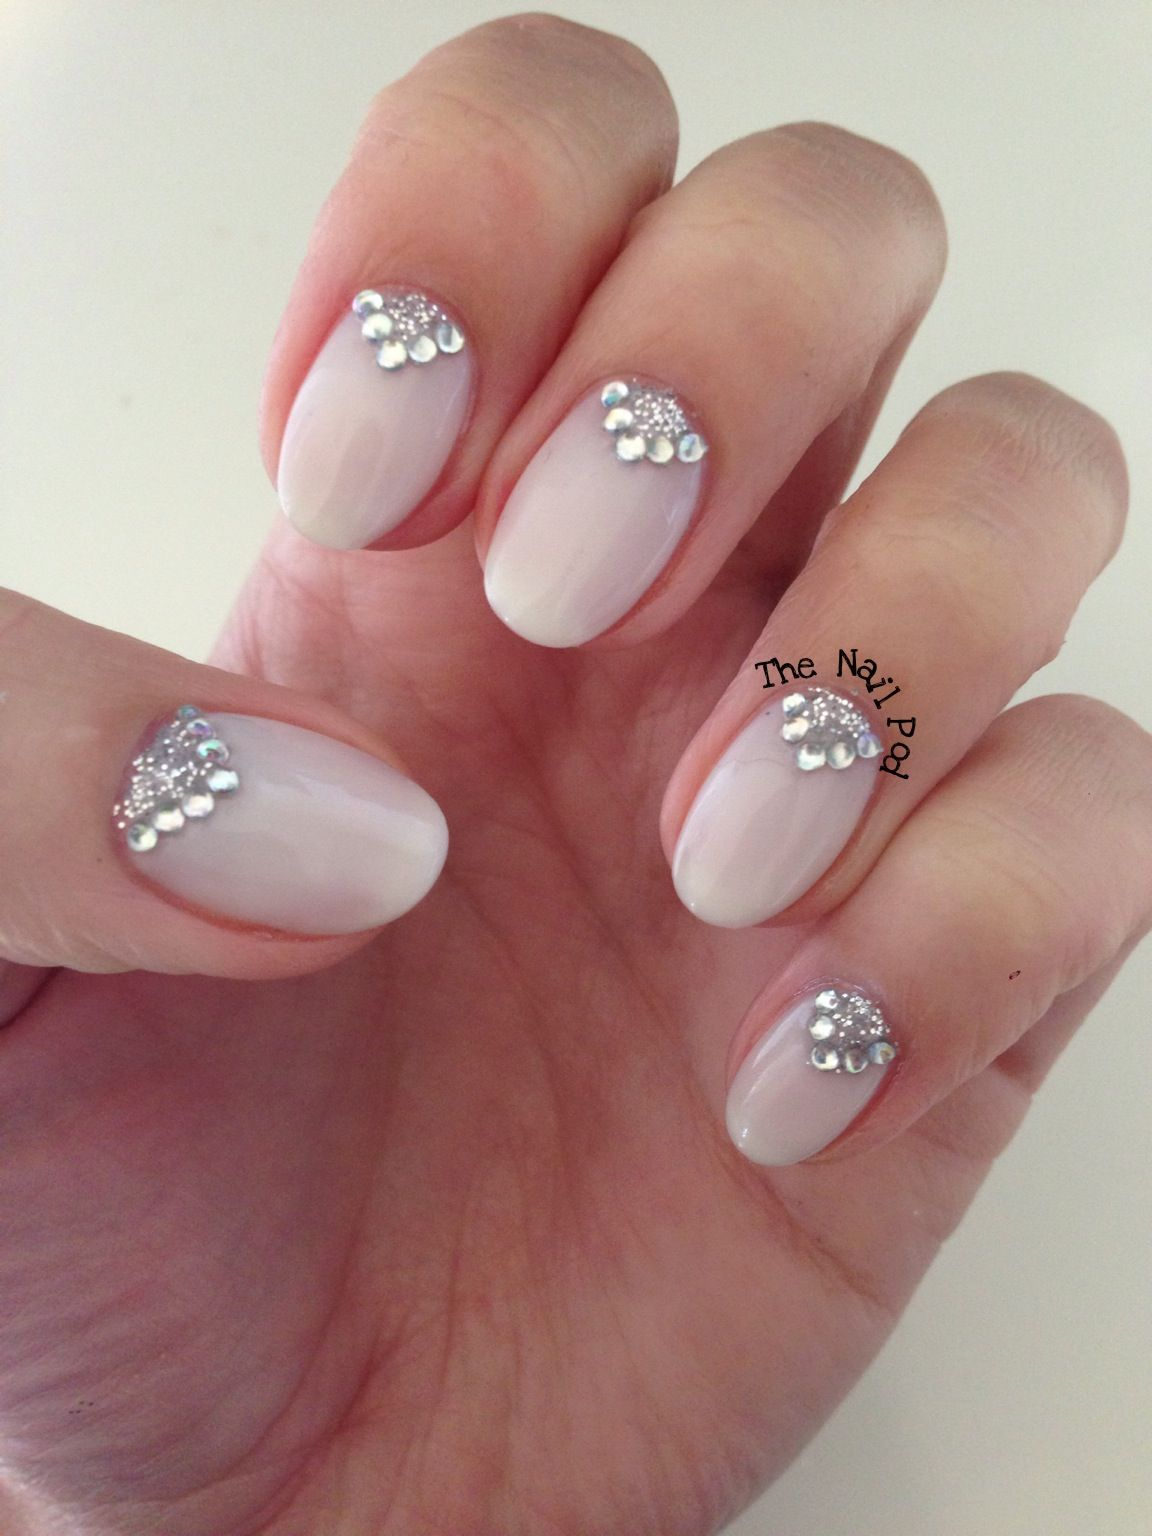 CND Shellac in Romantique with glitter and sparkle design